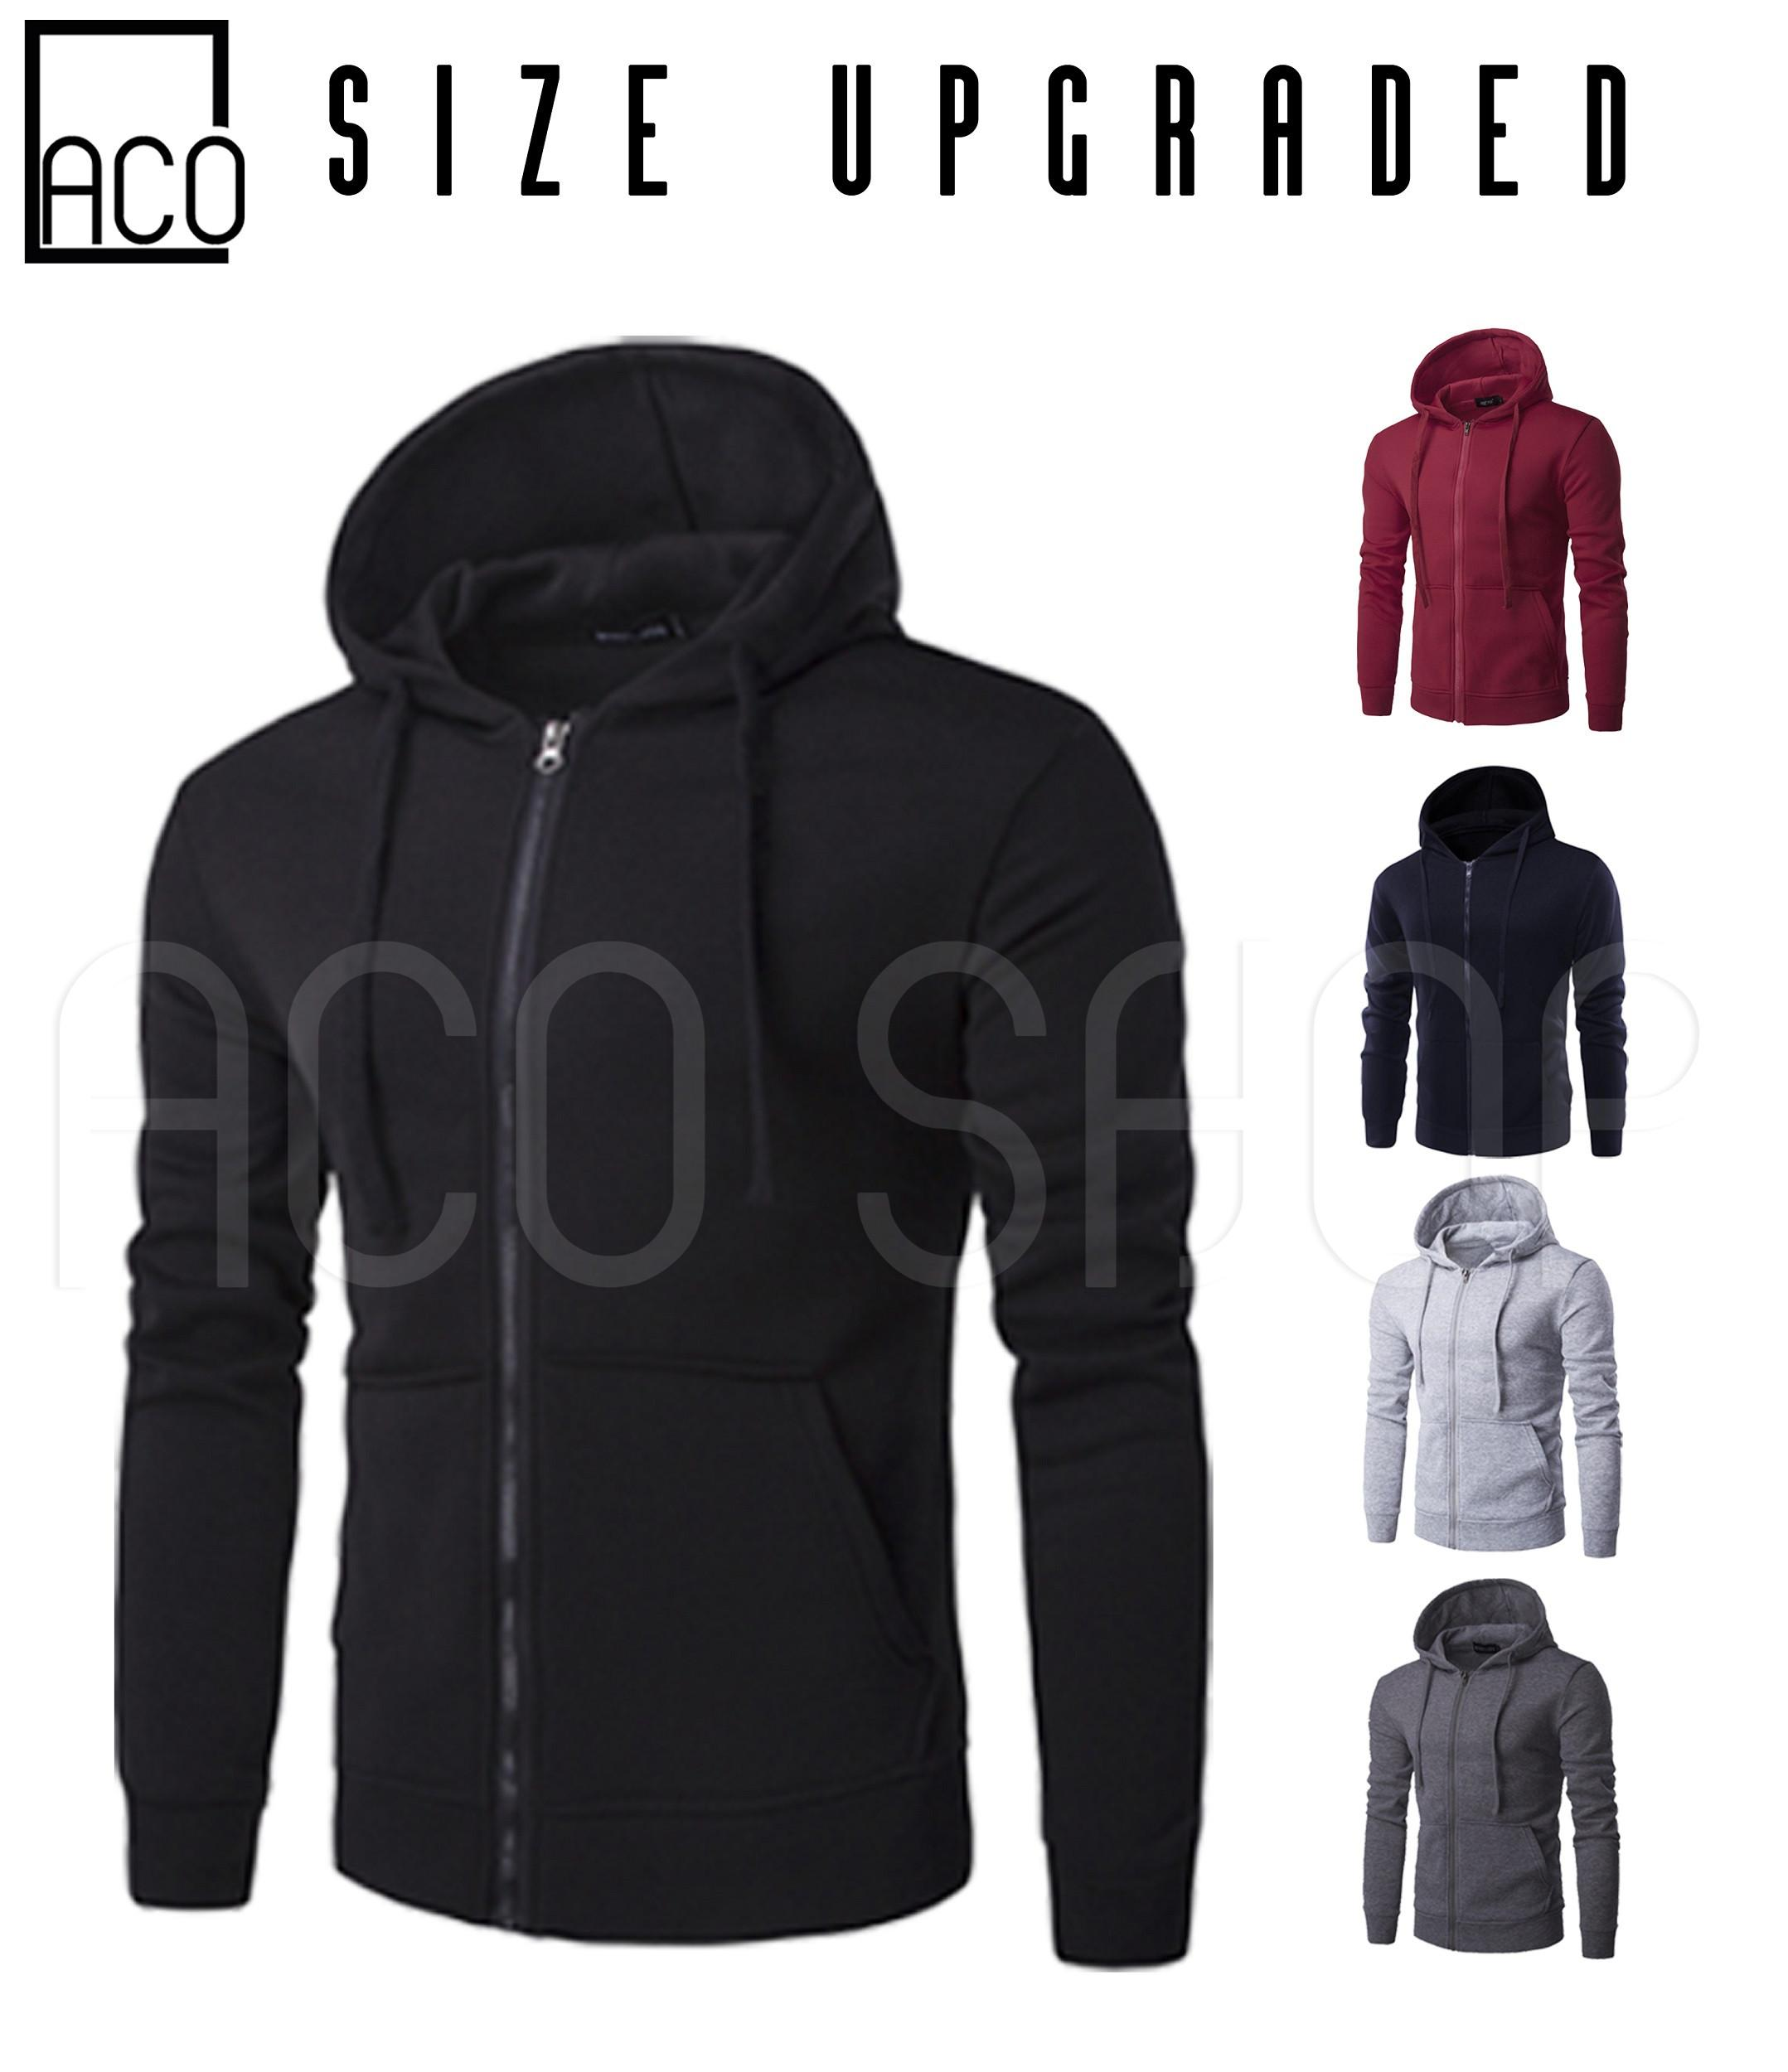 f87462347e3e ACO Fashion Mens Jacket with zipper Hoodie Jacket Plain (Size Upgraded)